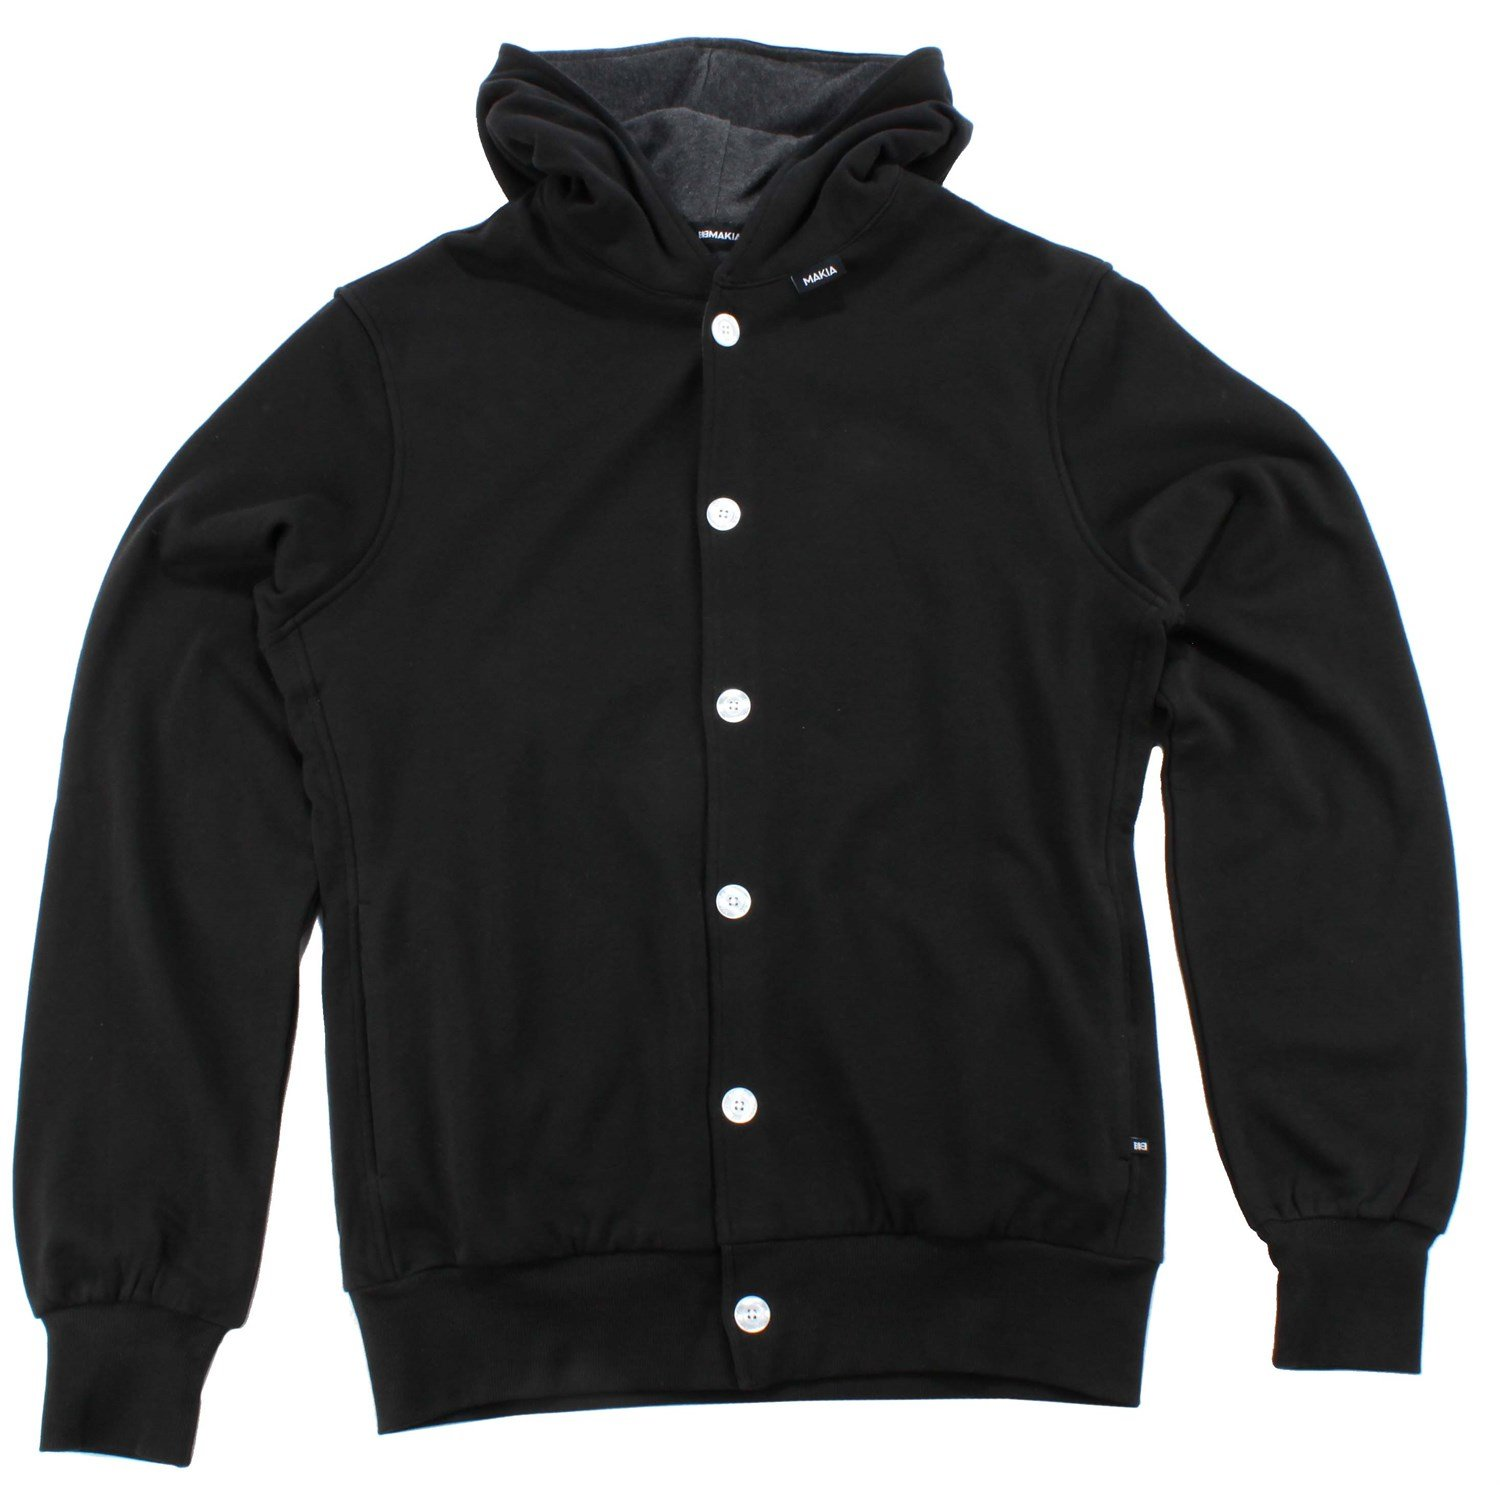 Button up hoodies